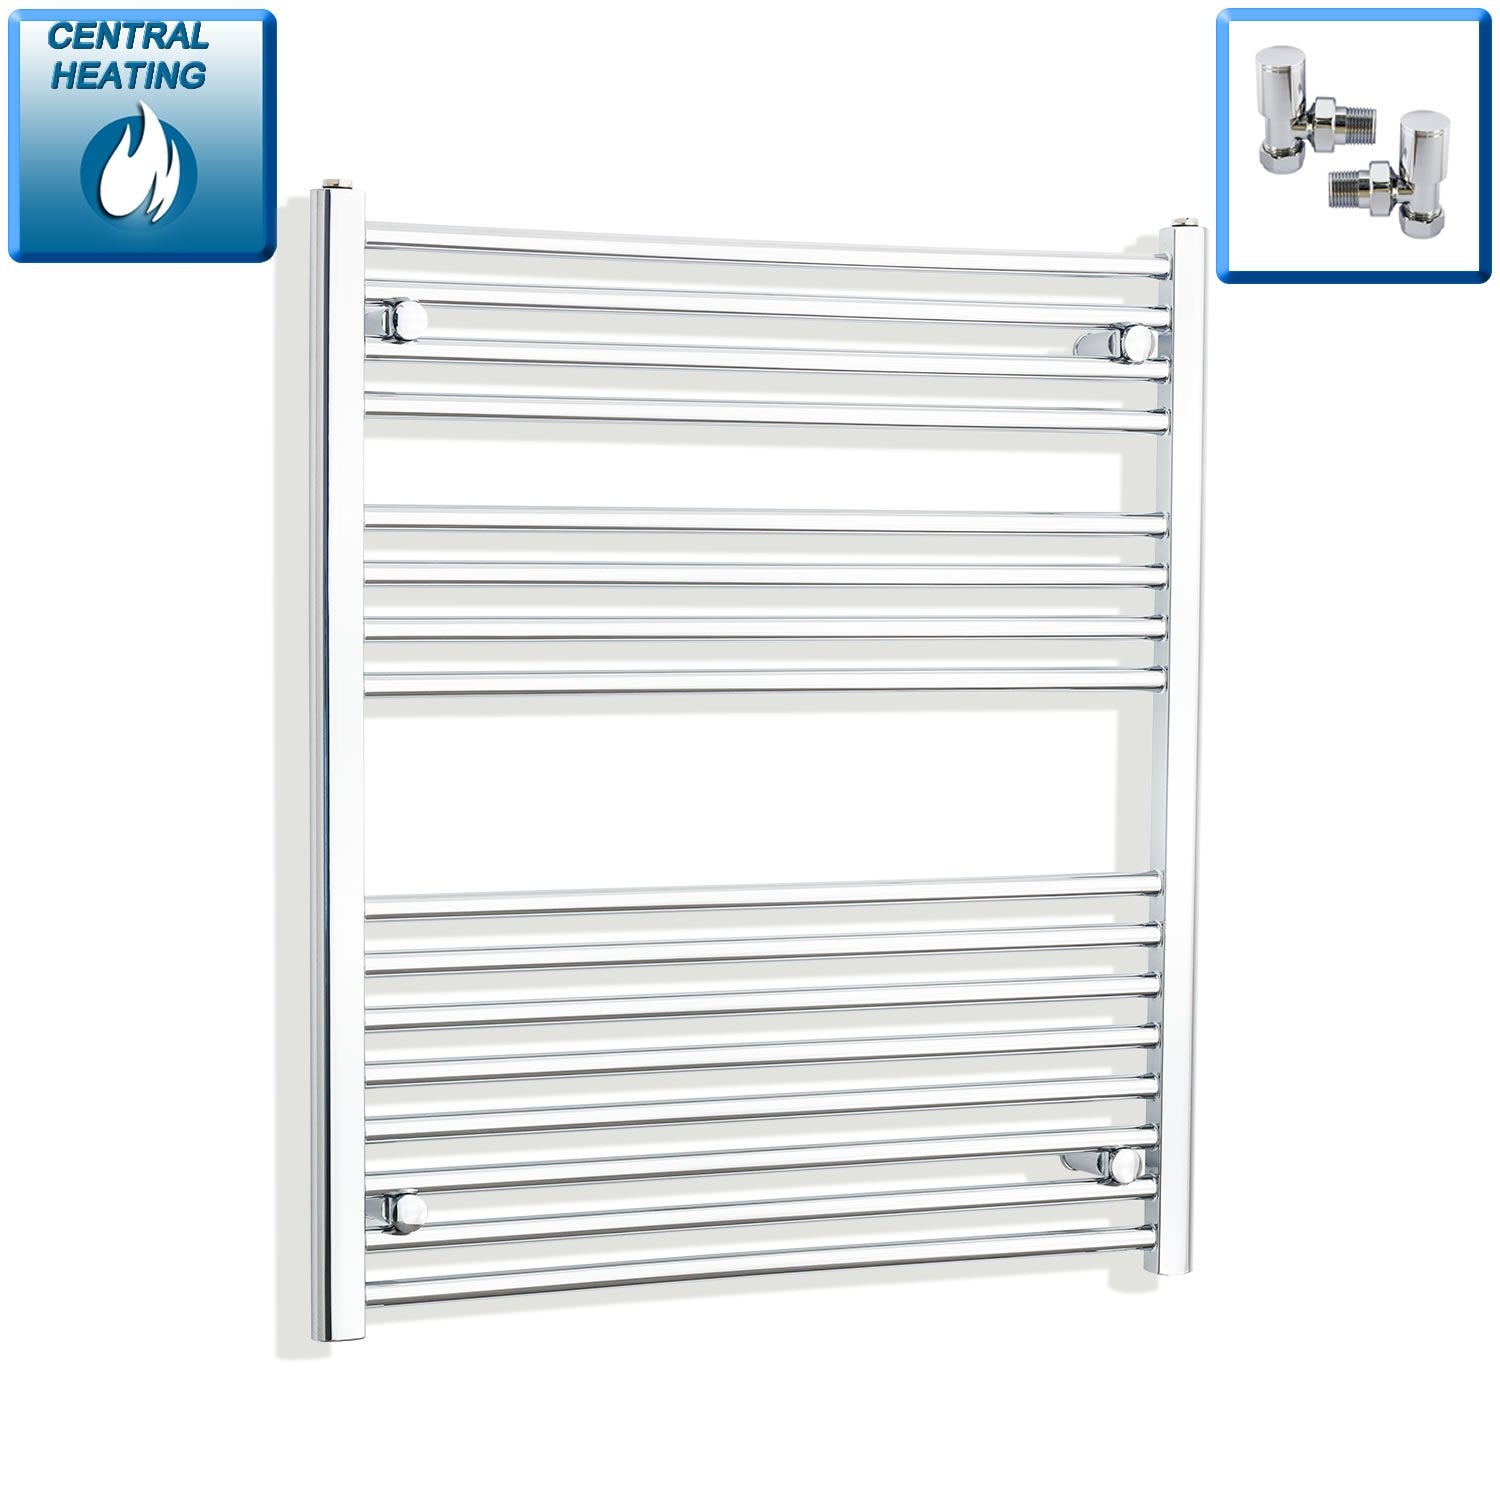 1000mm Wide 900mm High Flat Chrome Heated Towel Rail Radiator HTR,With Angled Valve